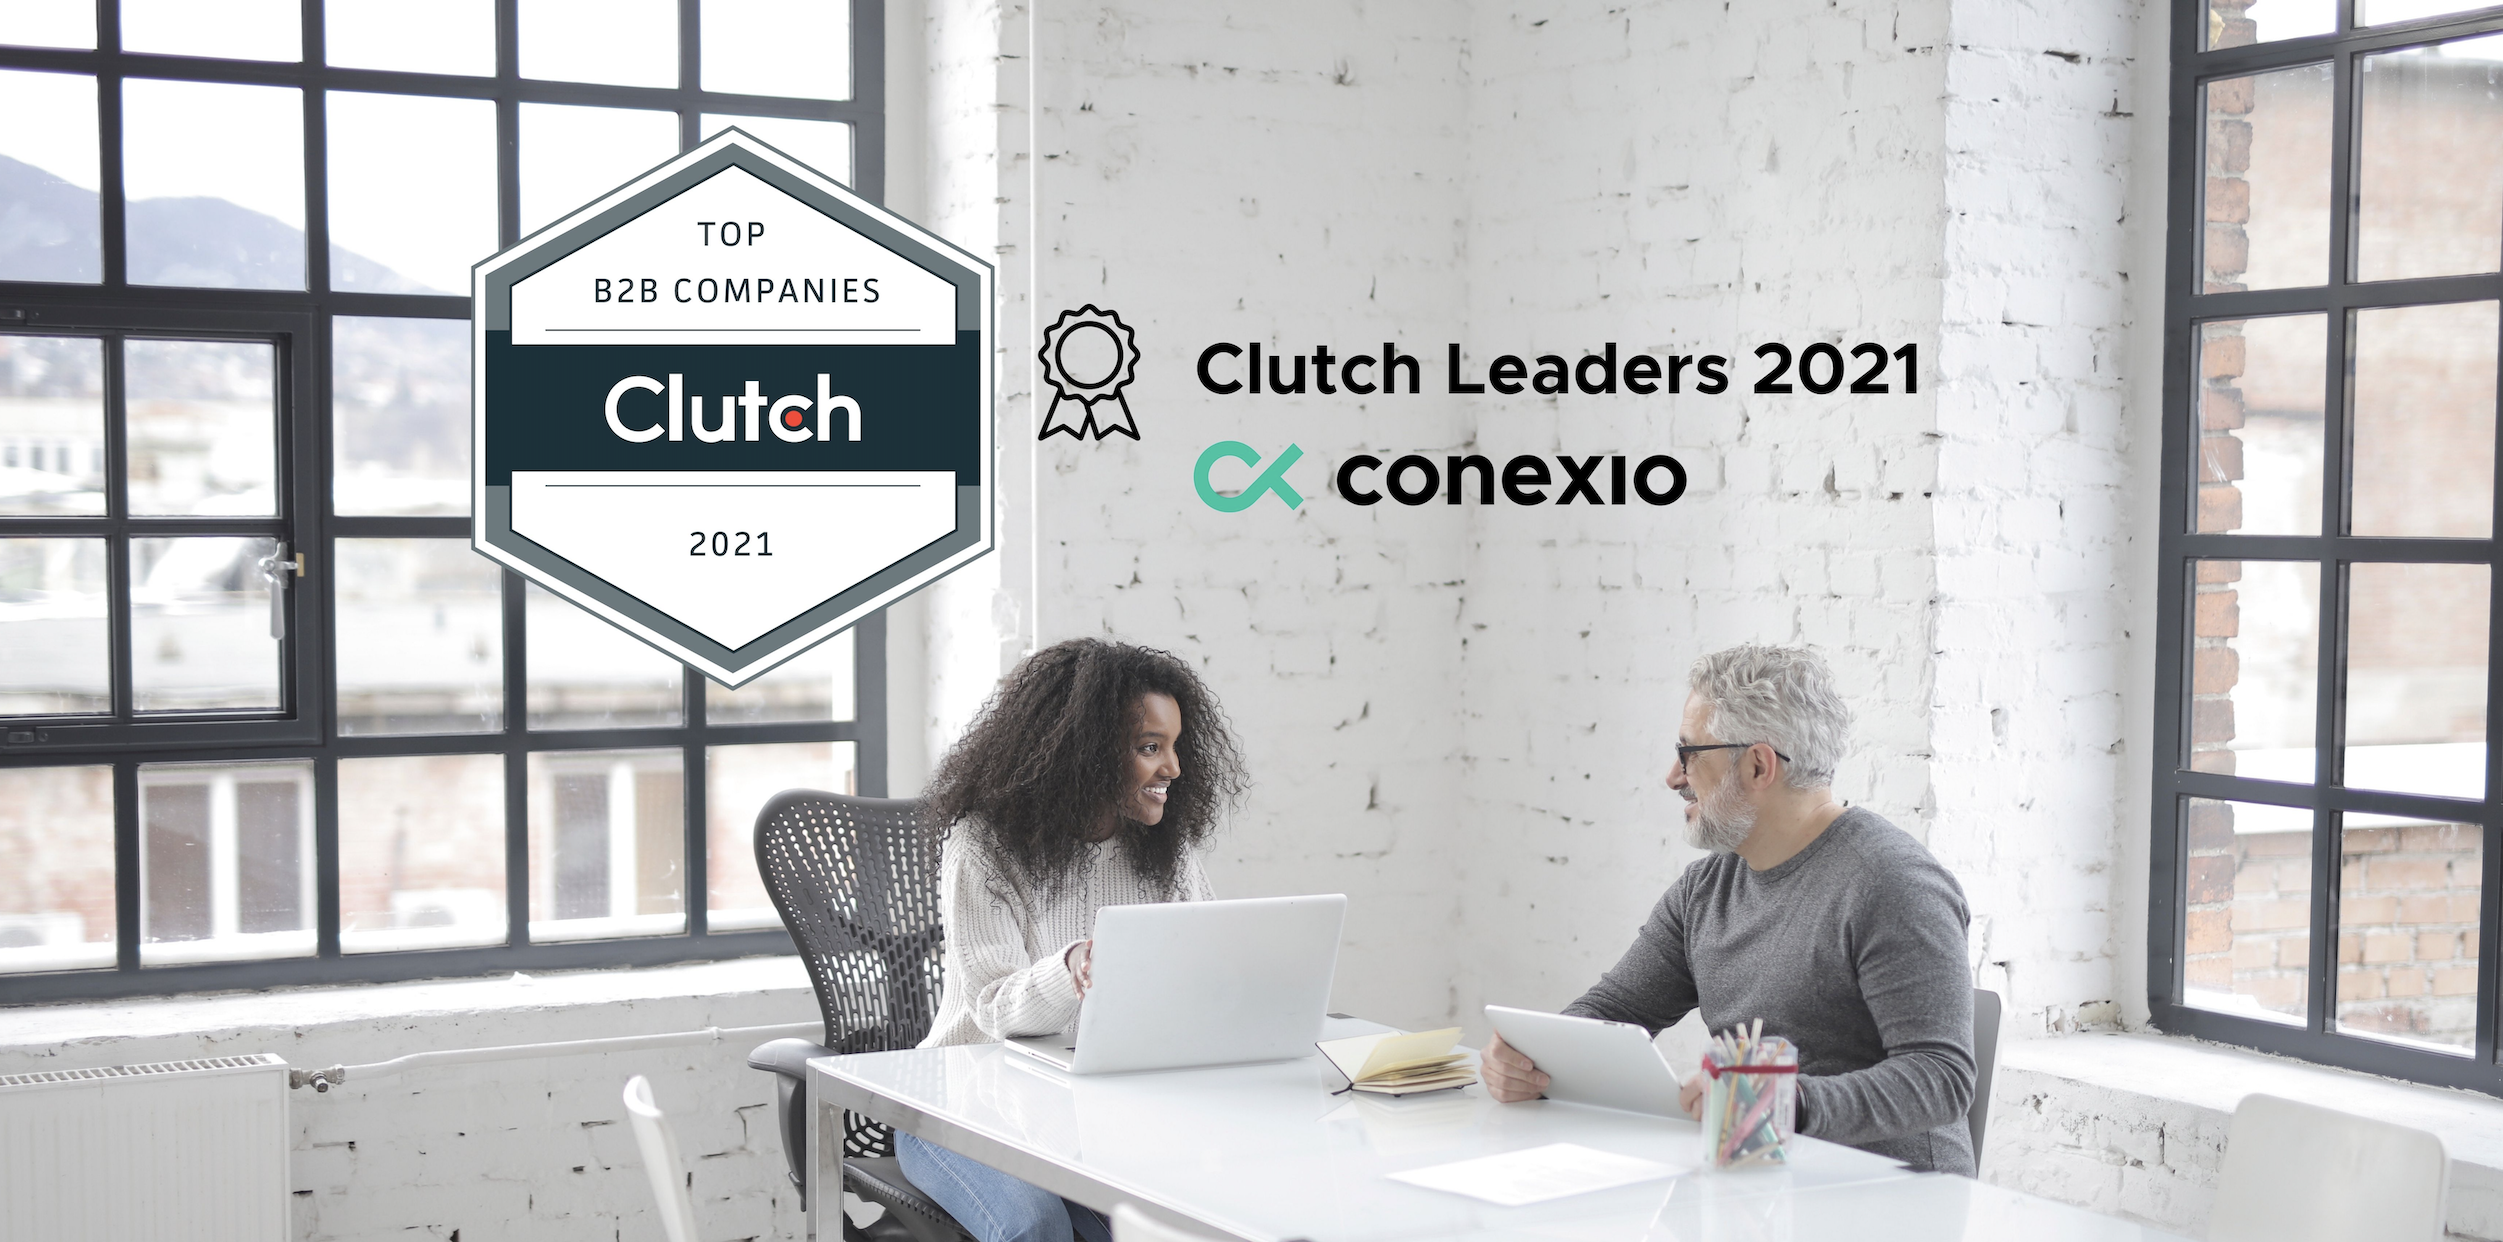 Conexio has been awarded among the 15 best companies with sustained growth.